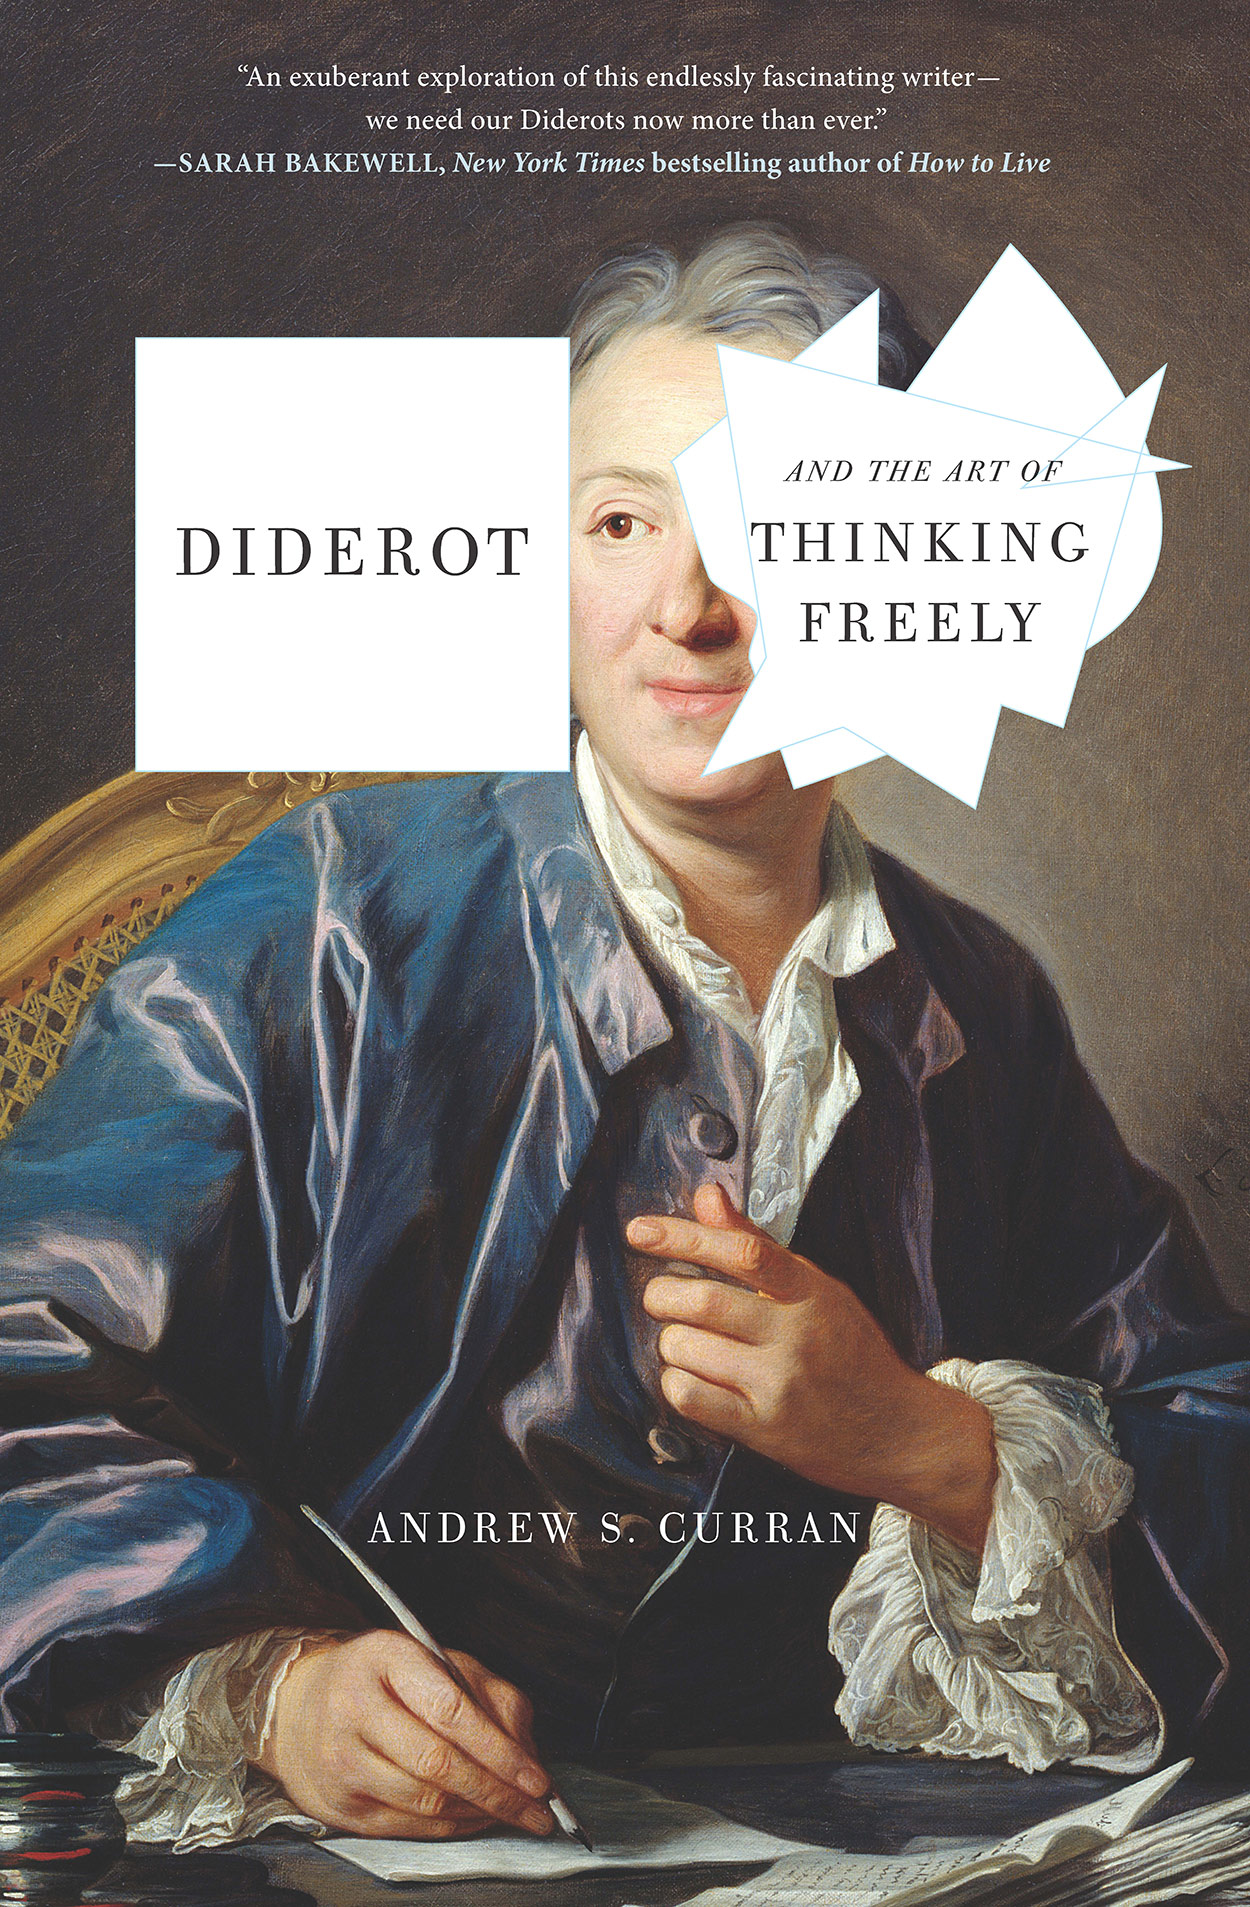 Diderot-and-the-Art-of-Thinking-Freely